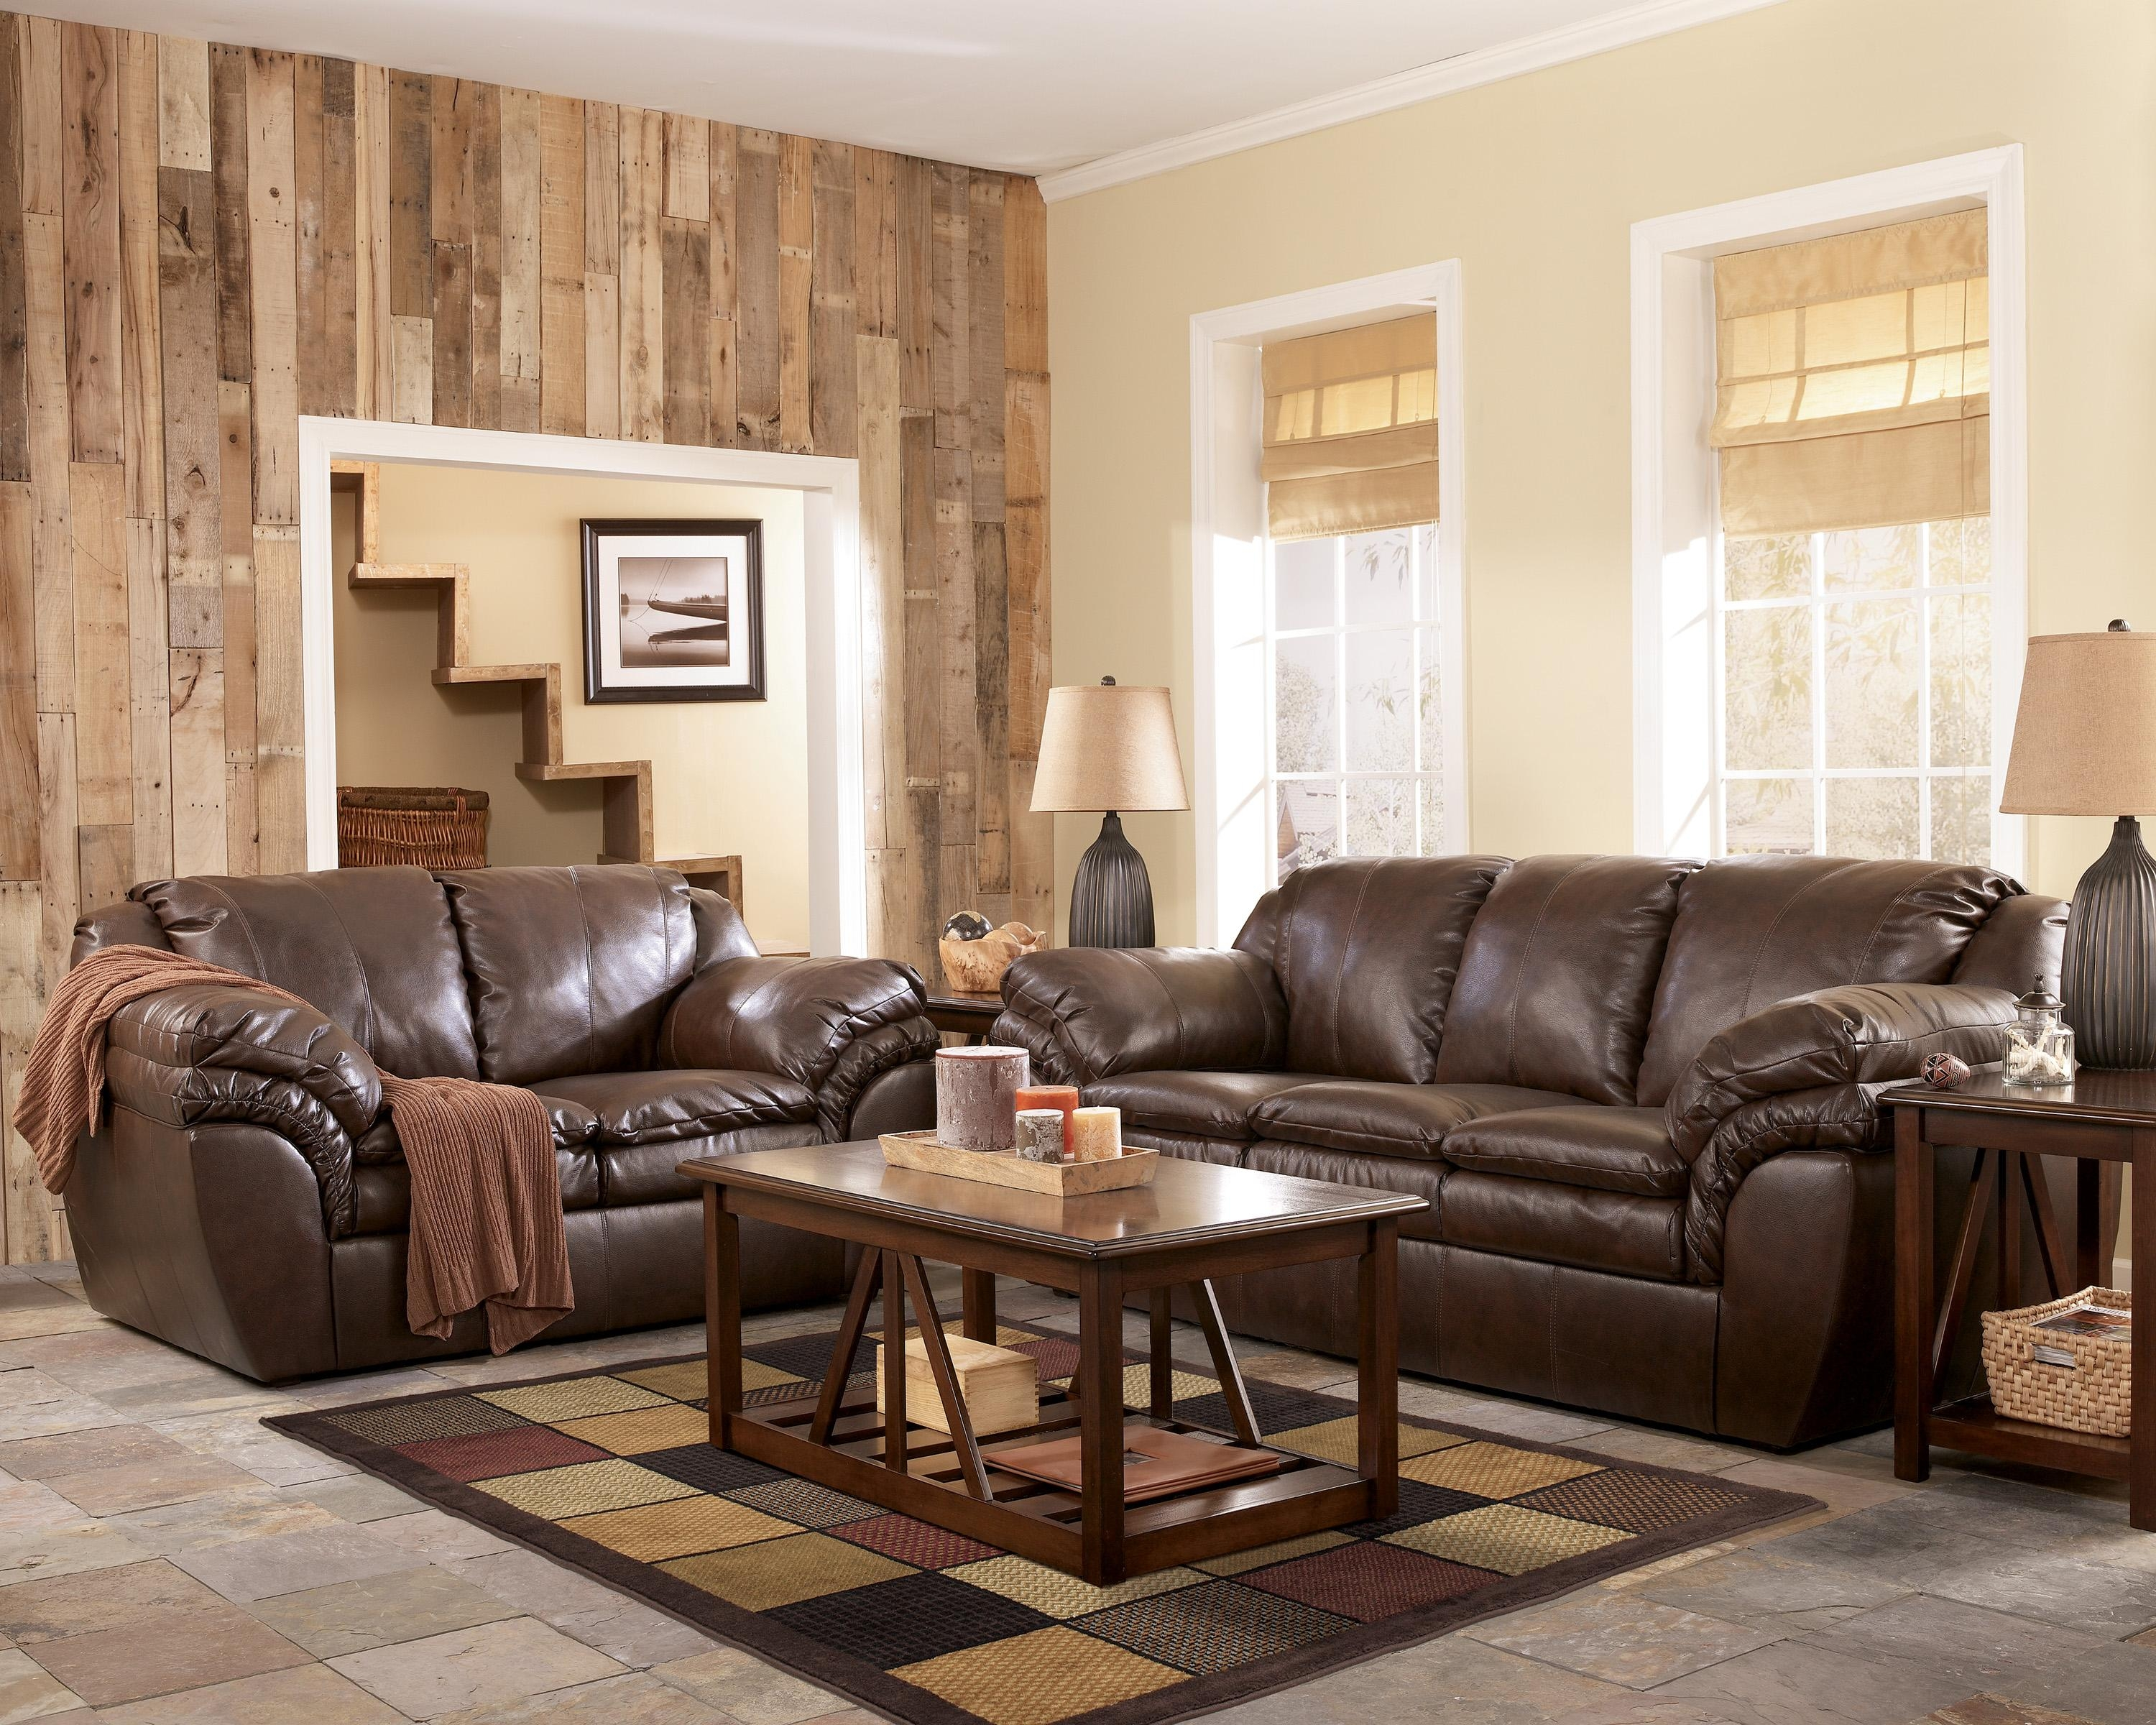 Chair & Sofa: Have An Interesting Living Room With Ashley Pertaining To Ashley Sectional Sleeper (Image 3 of 15)